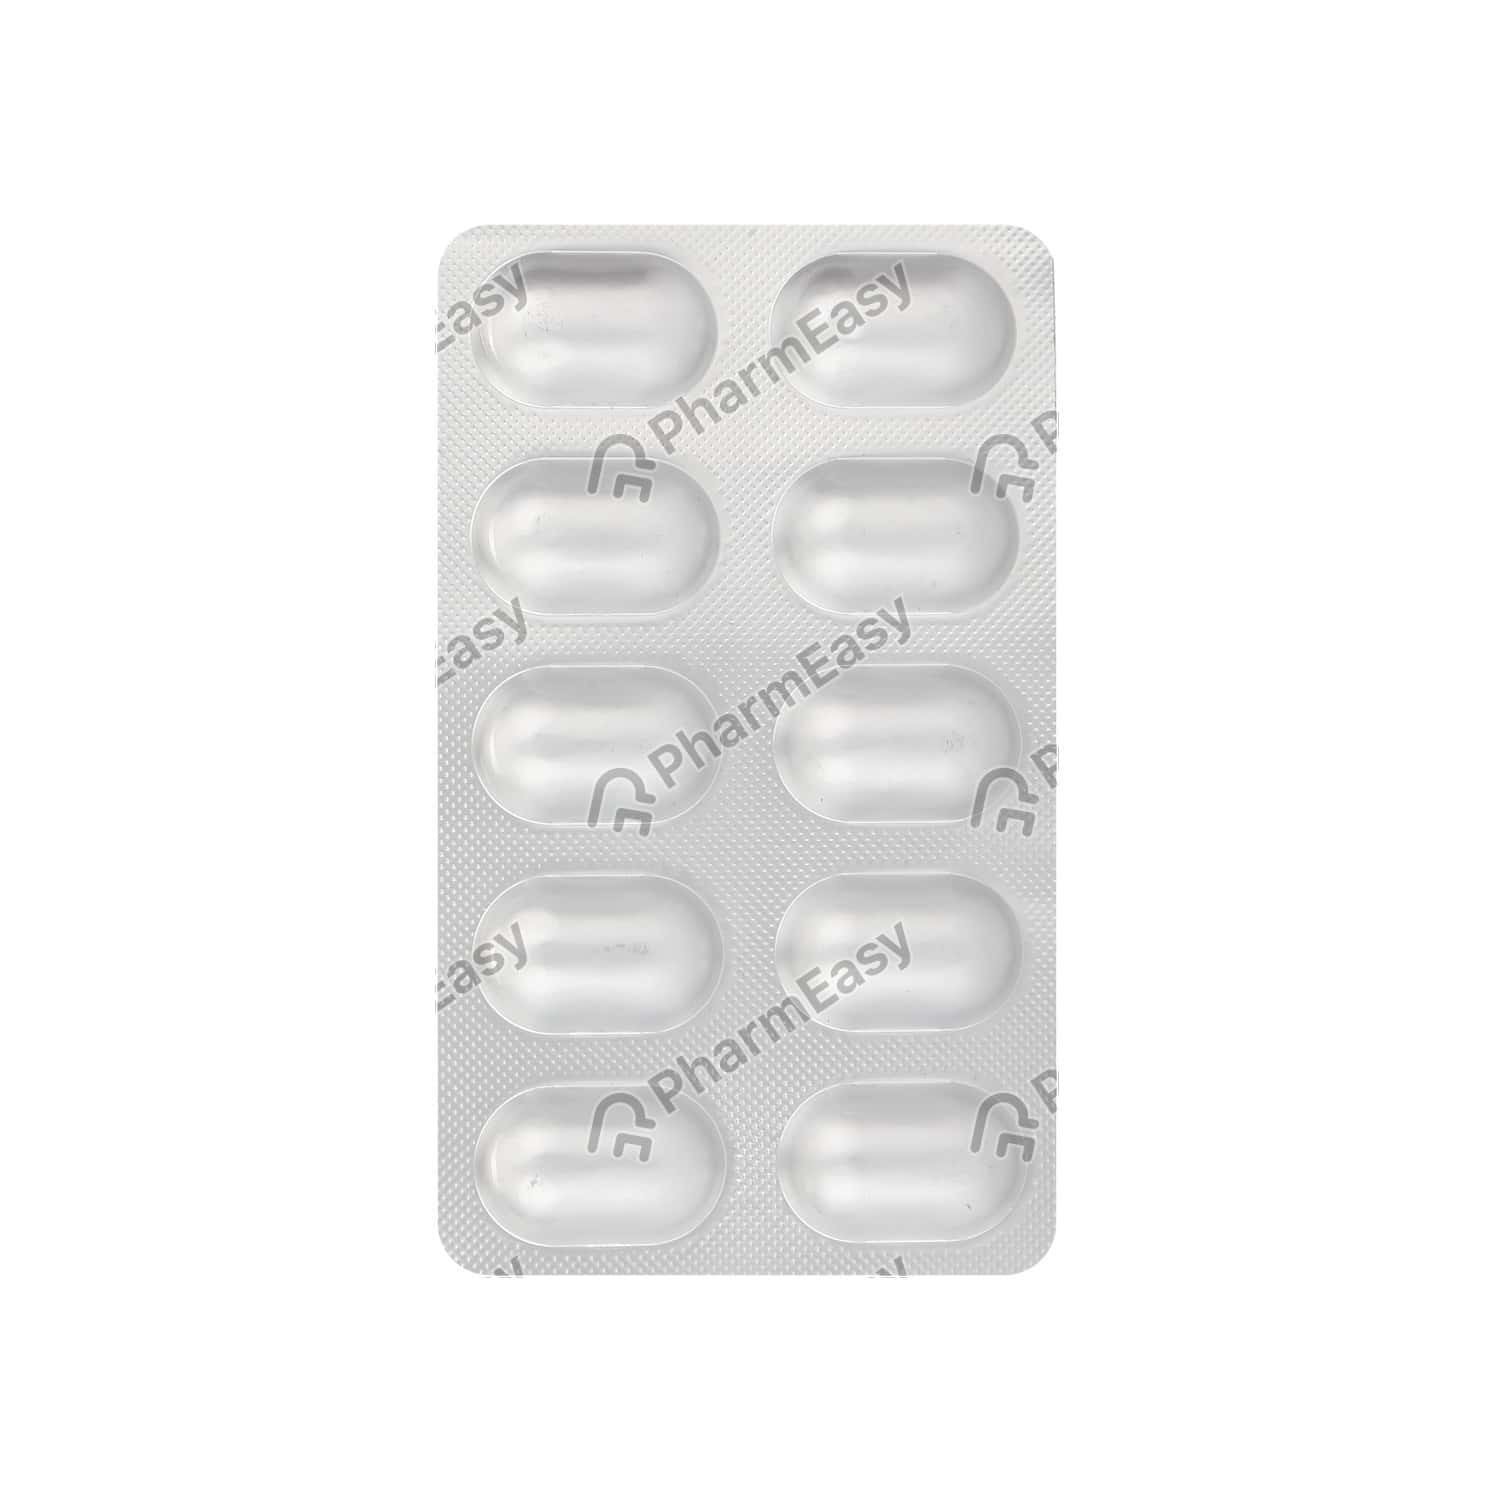 Volga M 0.3mg Strip Of 10 Tablets